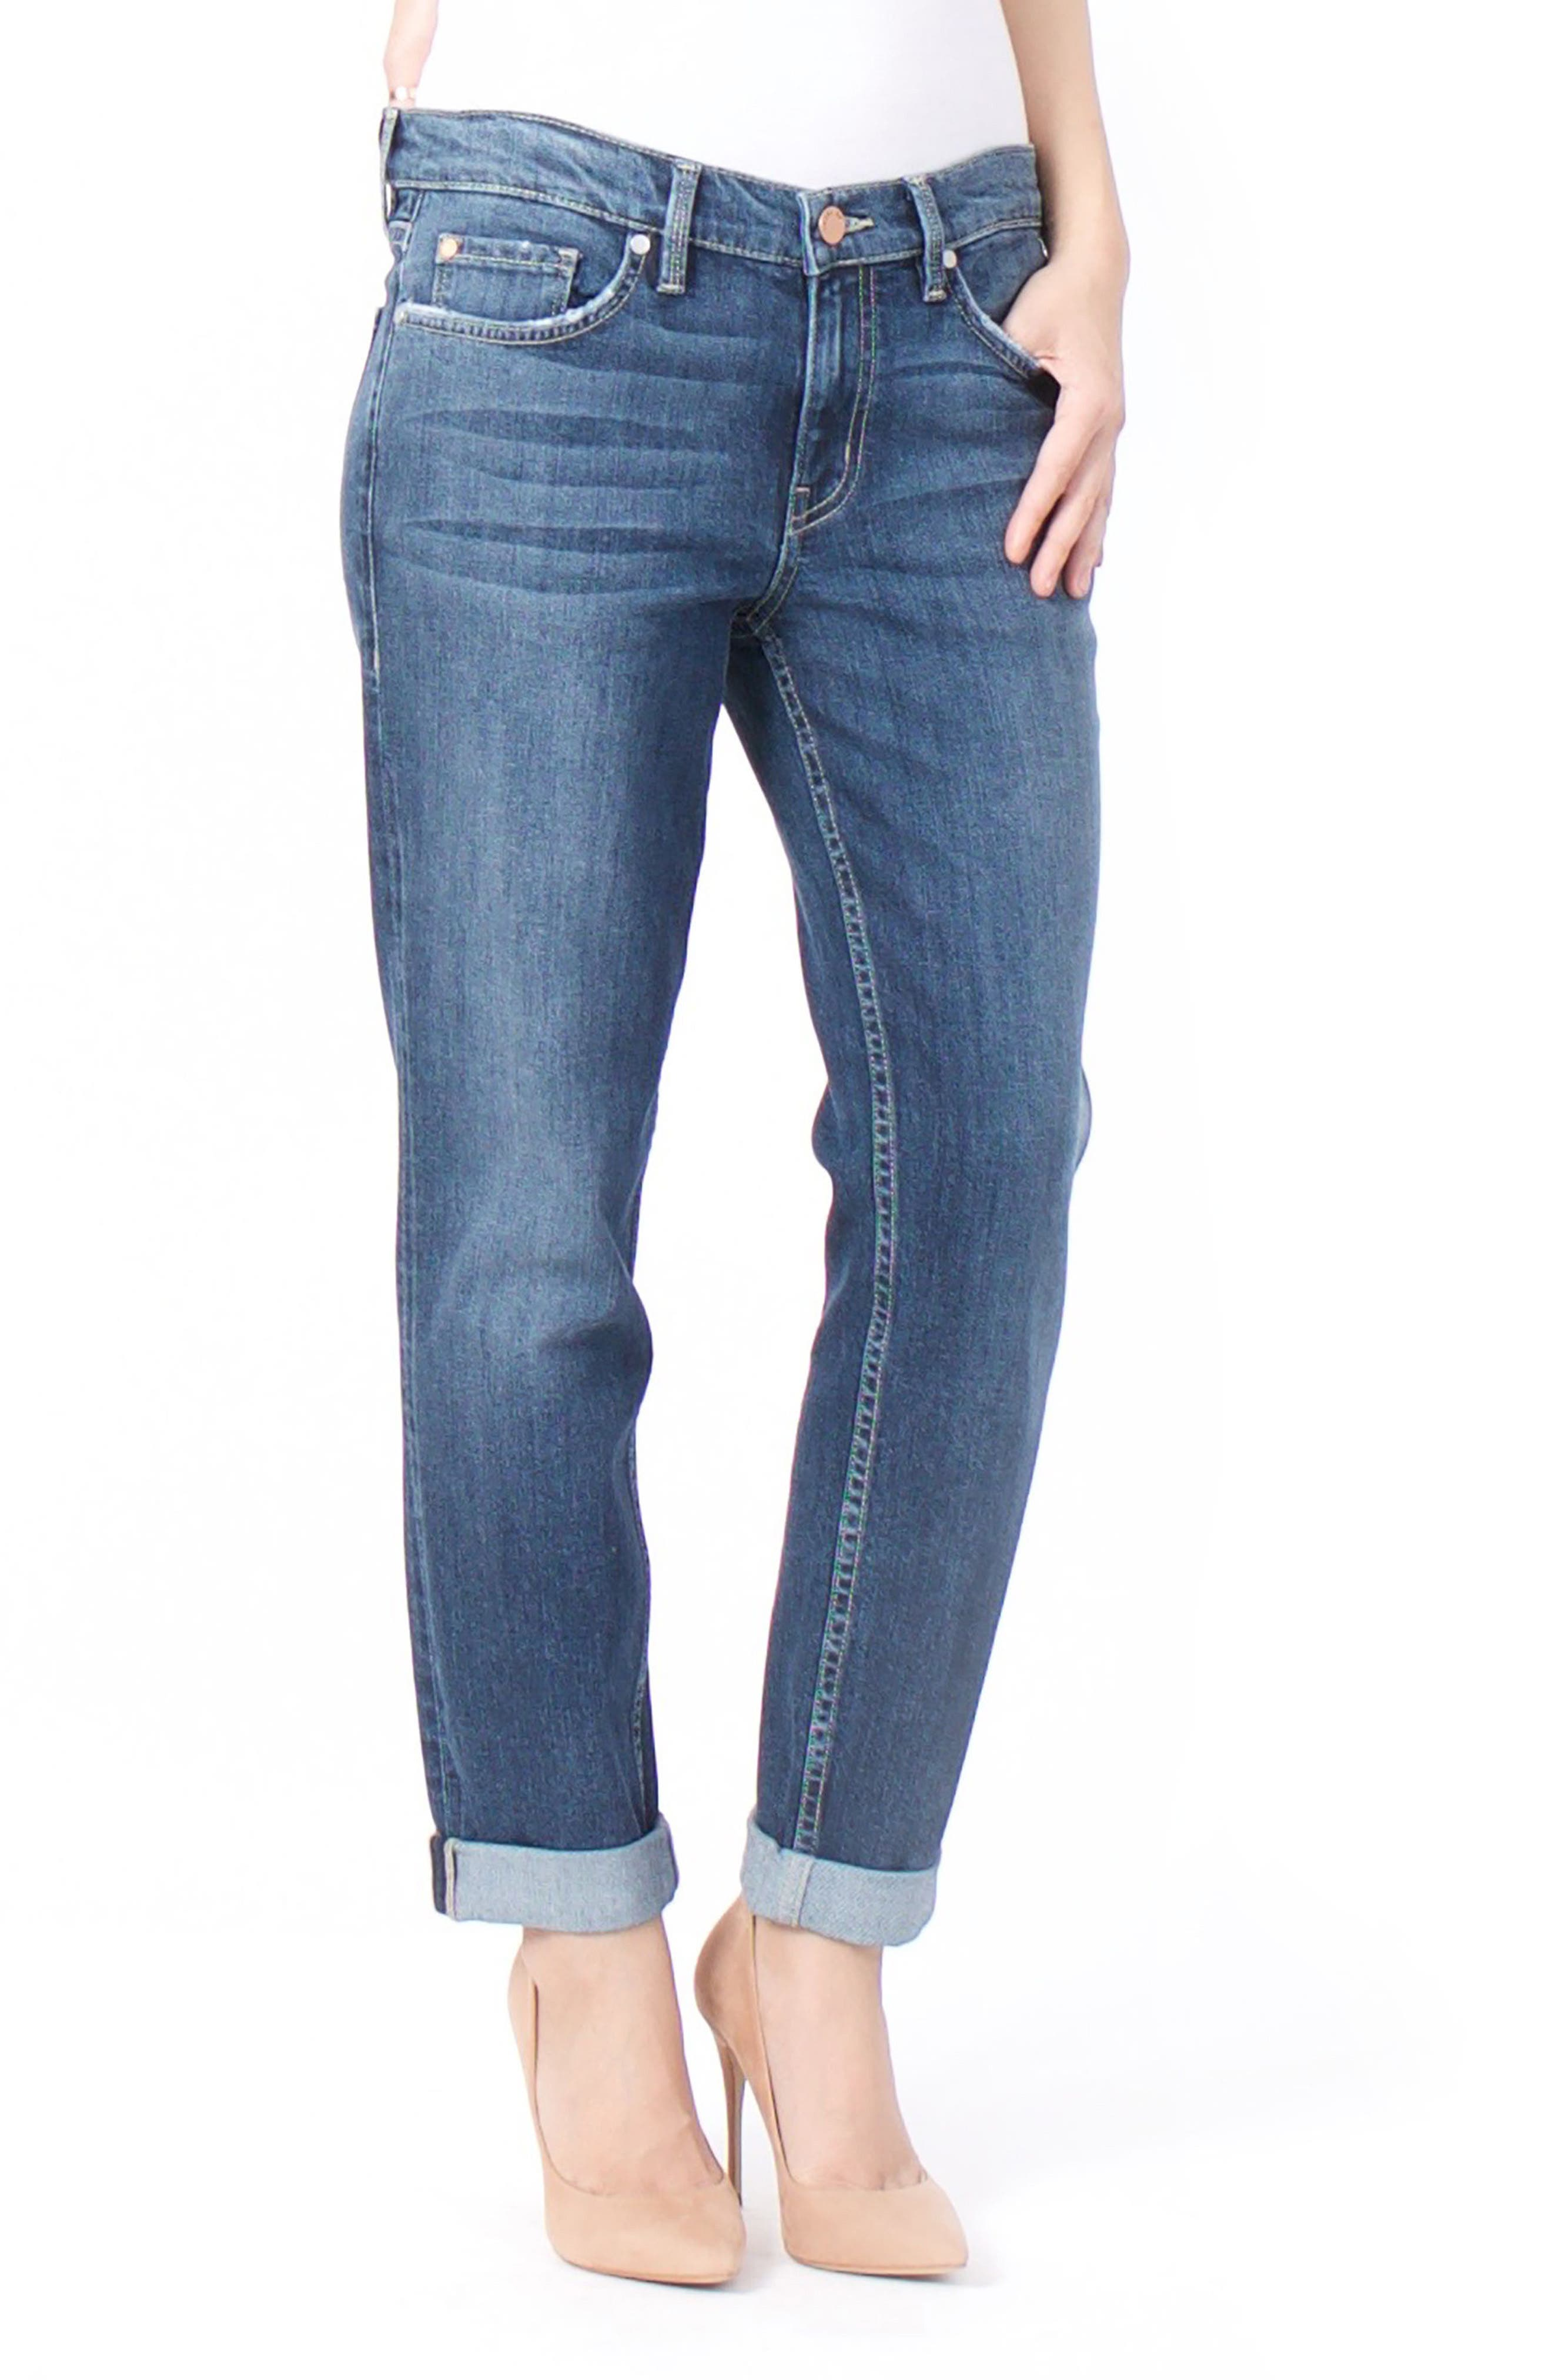 Alternate Image 1 Selected - Level 99 Sienna Stretch Ankle Jeans